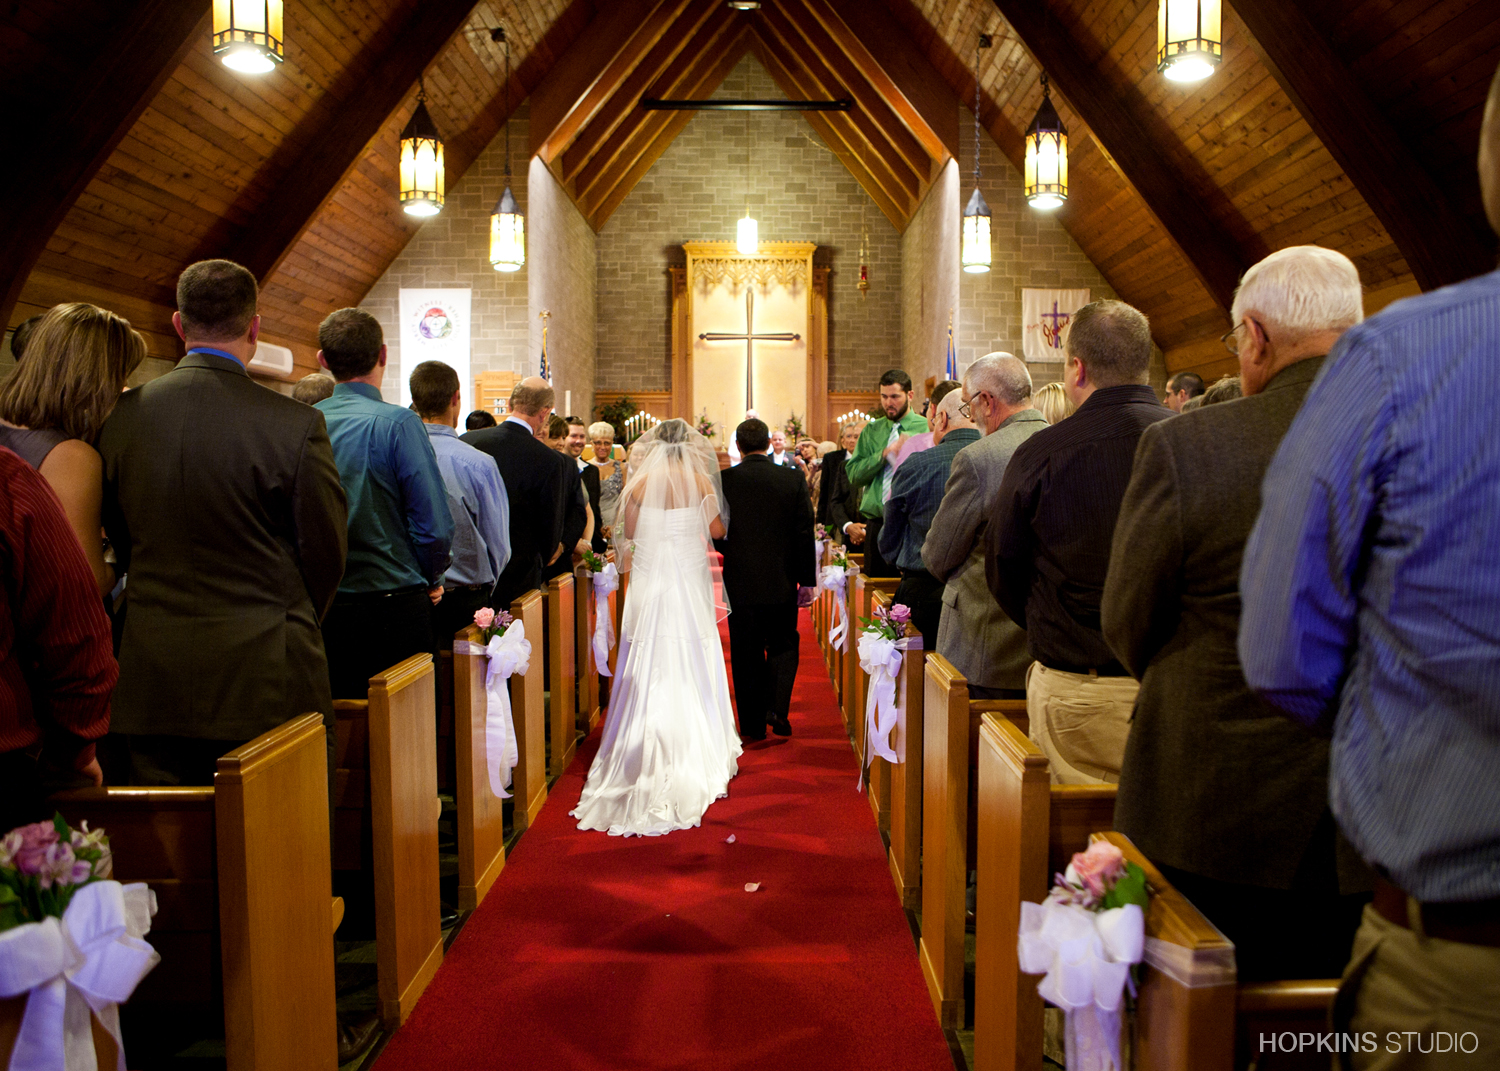 Wedding-Photography-Vineland-Center-Southwest-Michigan_21.jpg